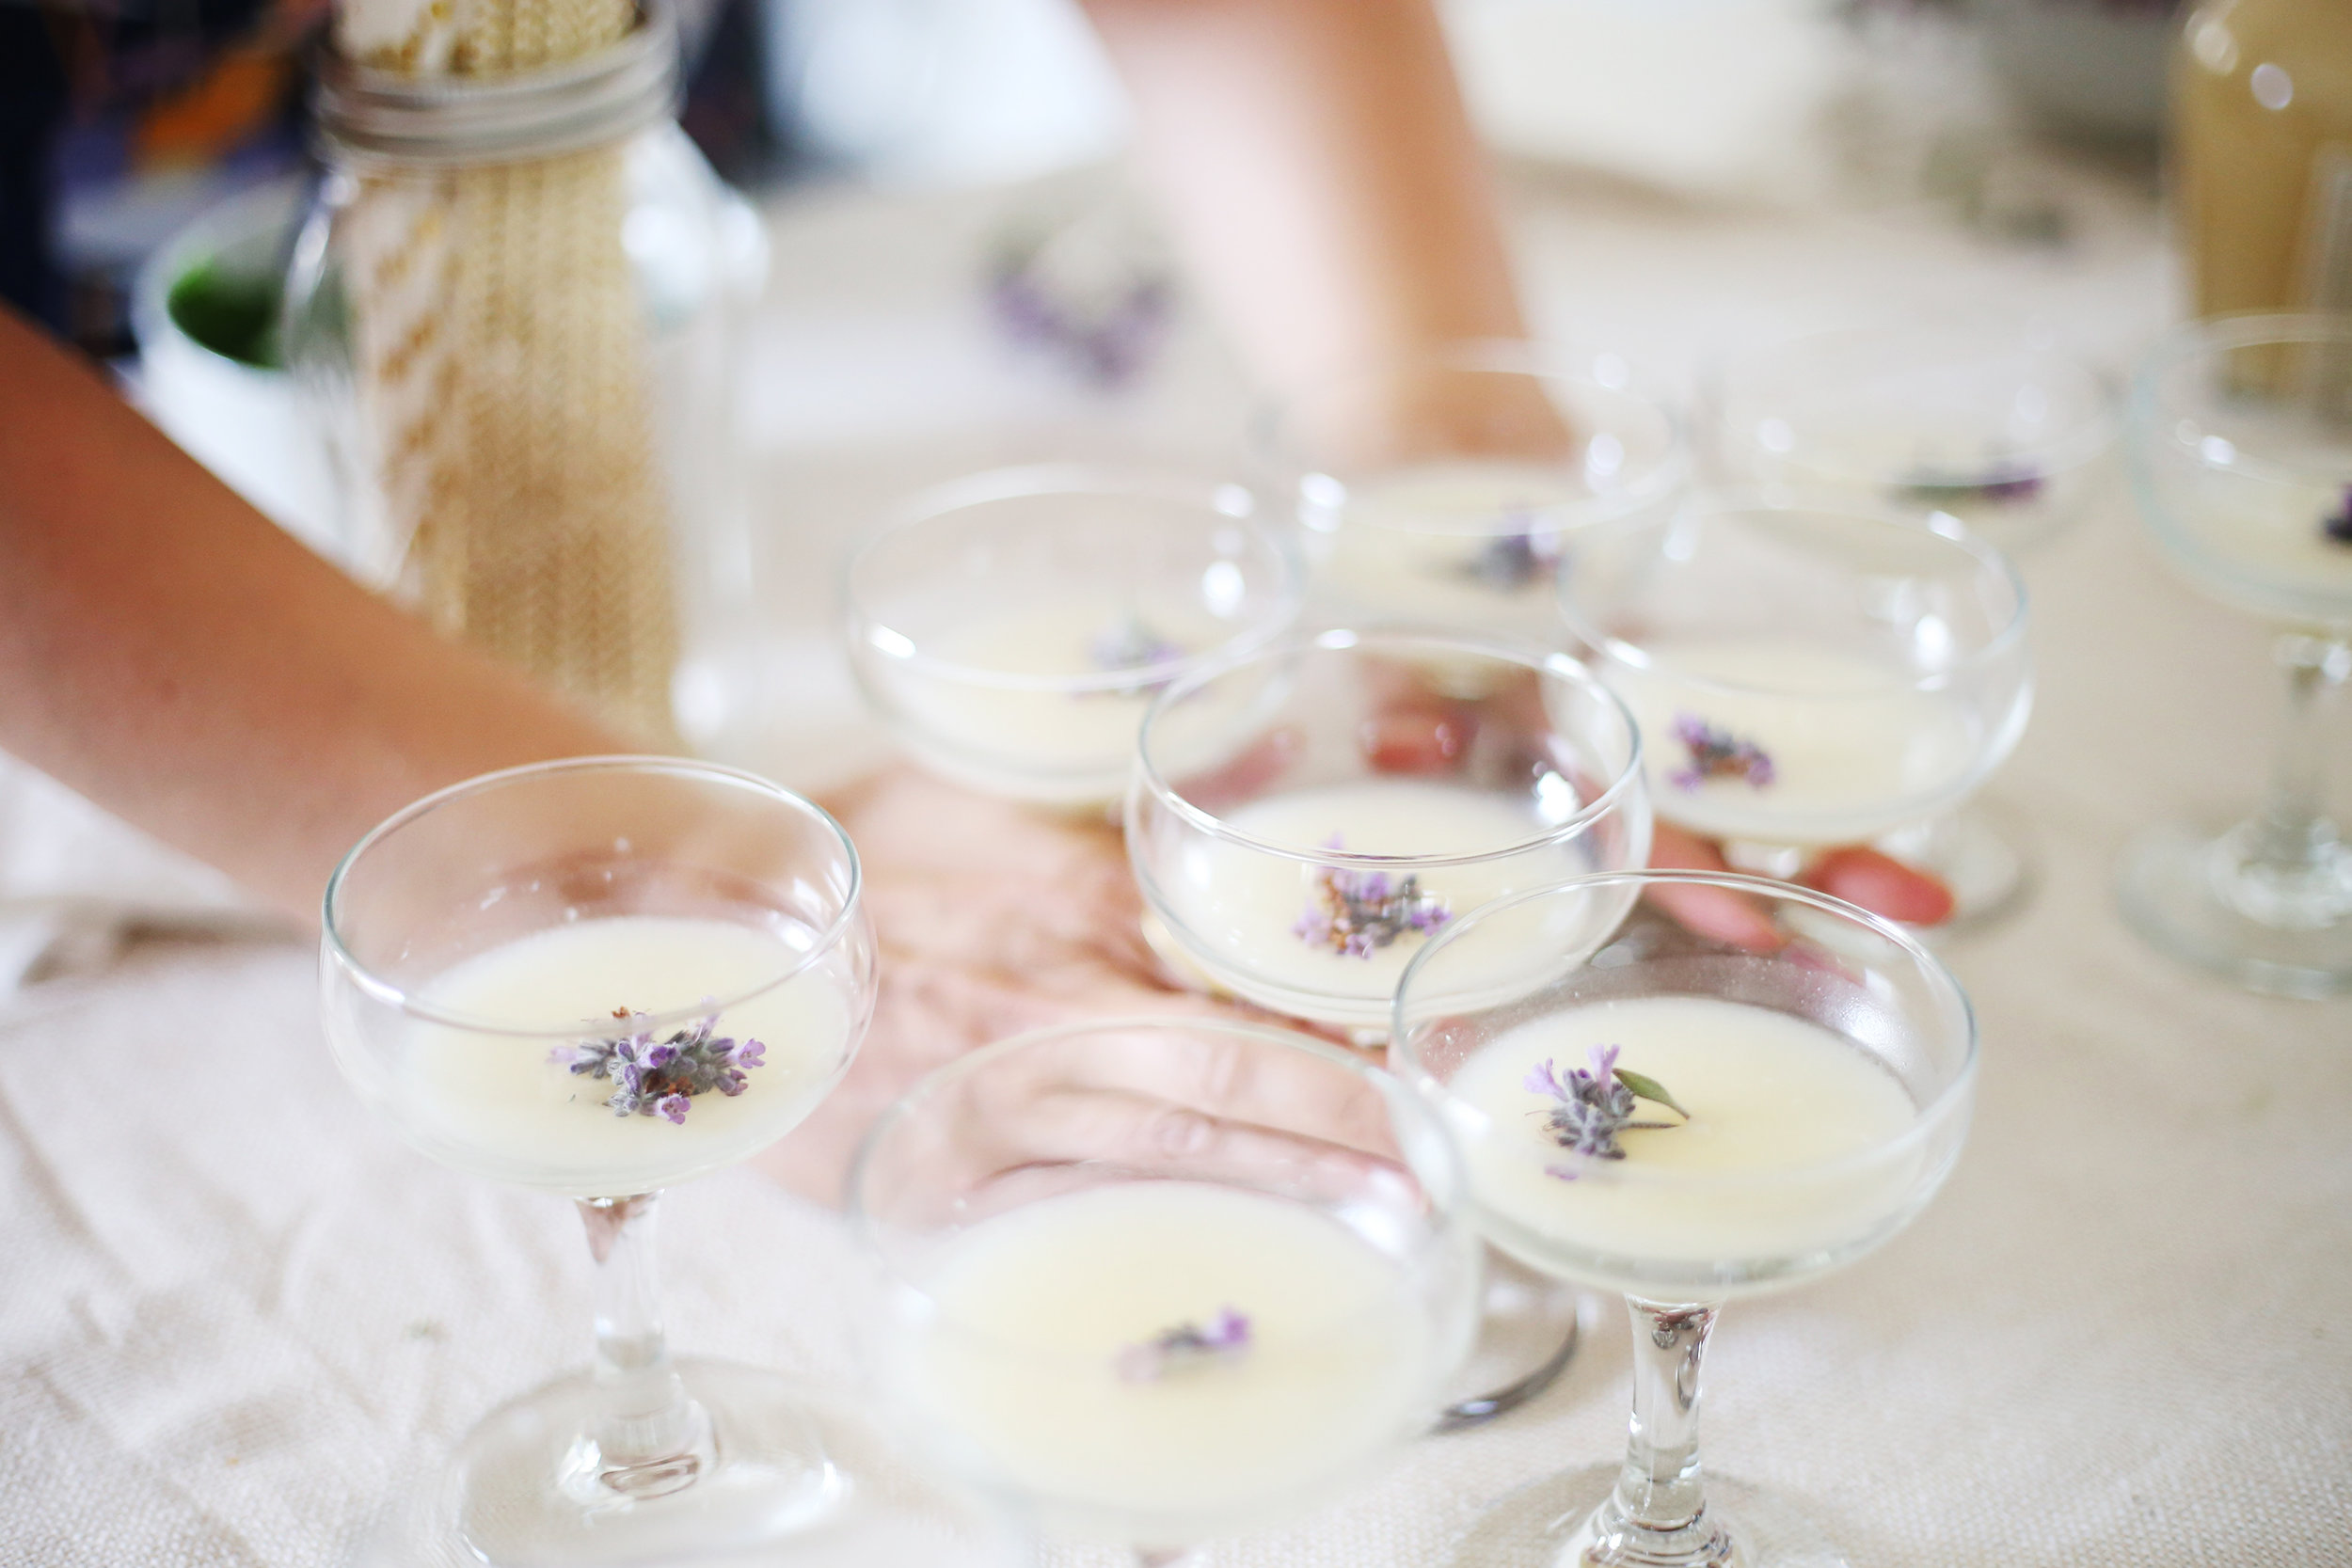 Song & Tonic presents a music tasting with a French 75